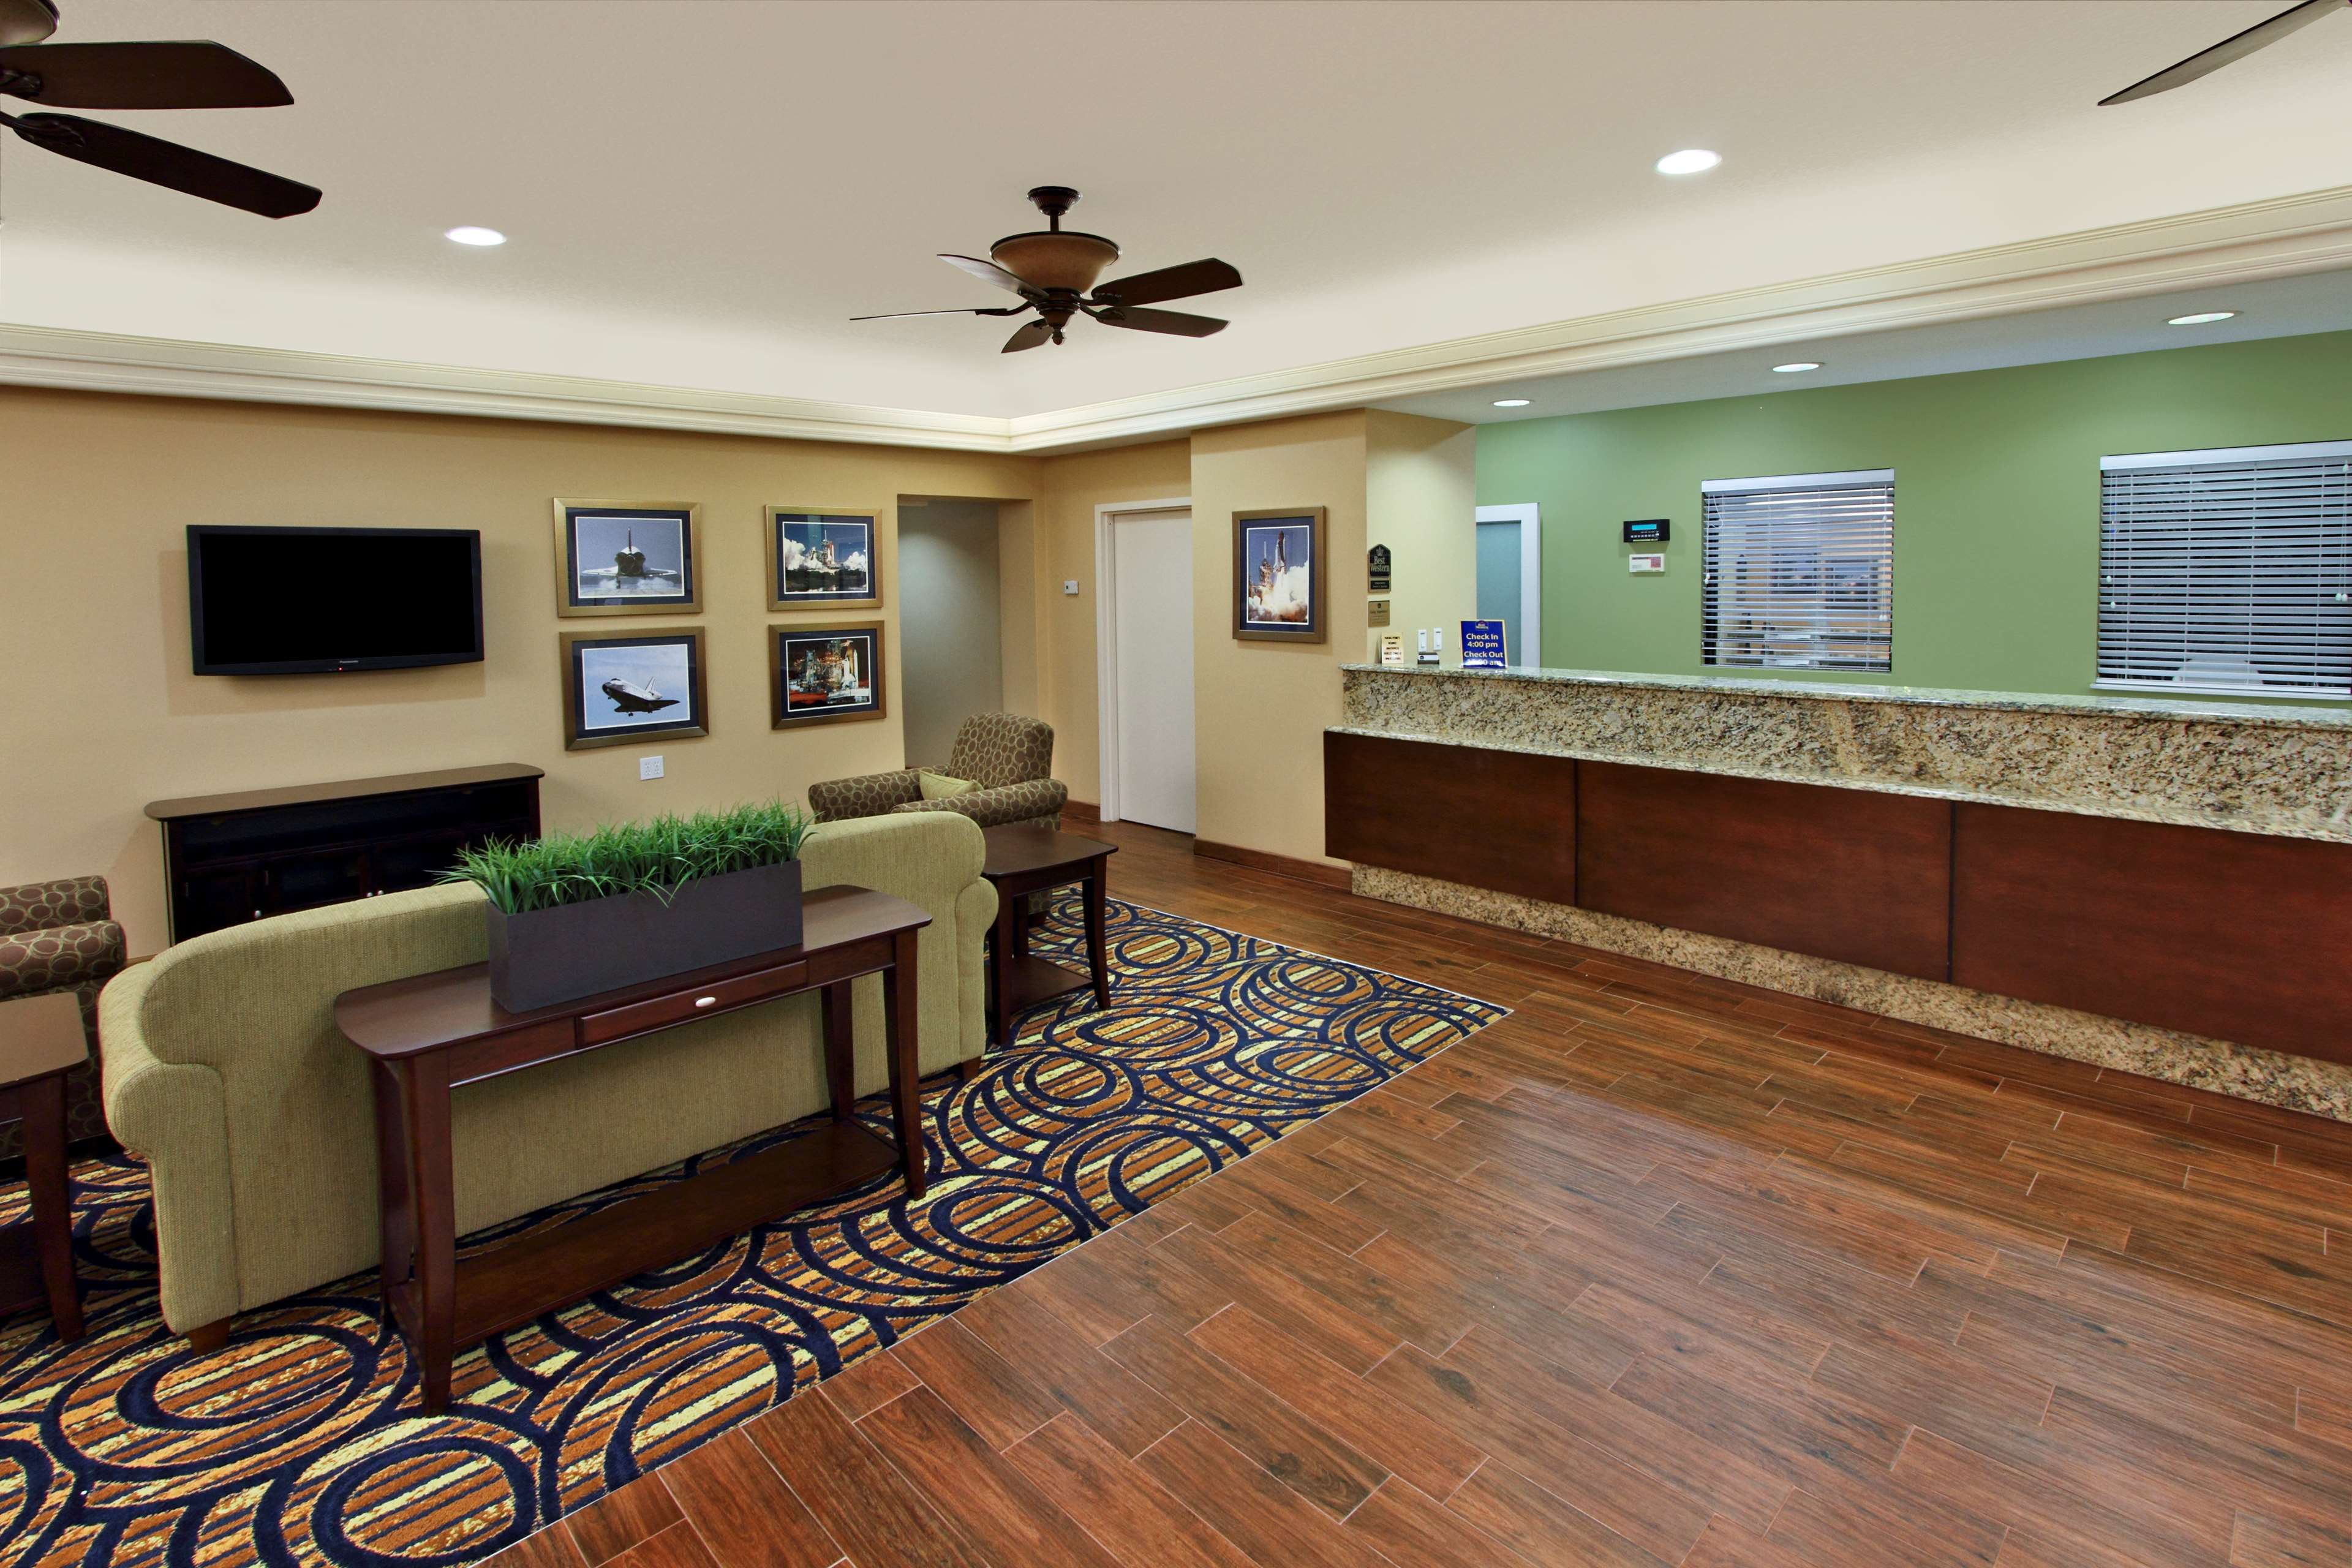 Best Western Cocoa Beach Hotel & Suites image 11